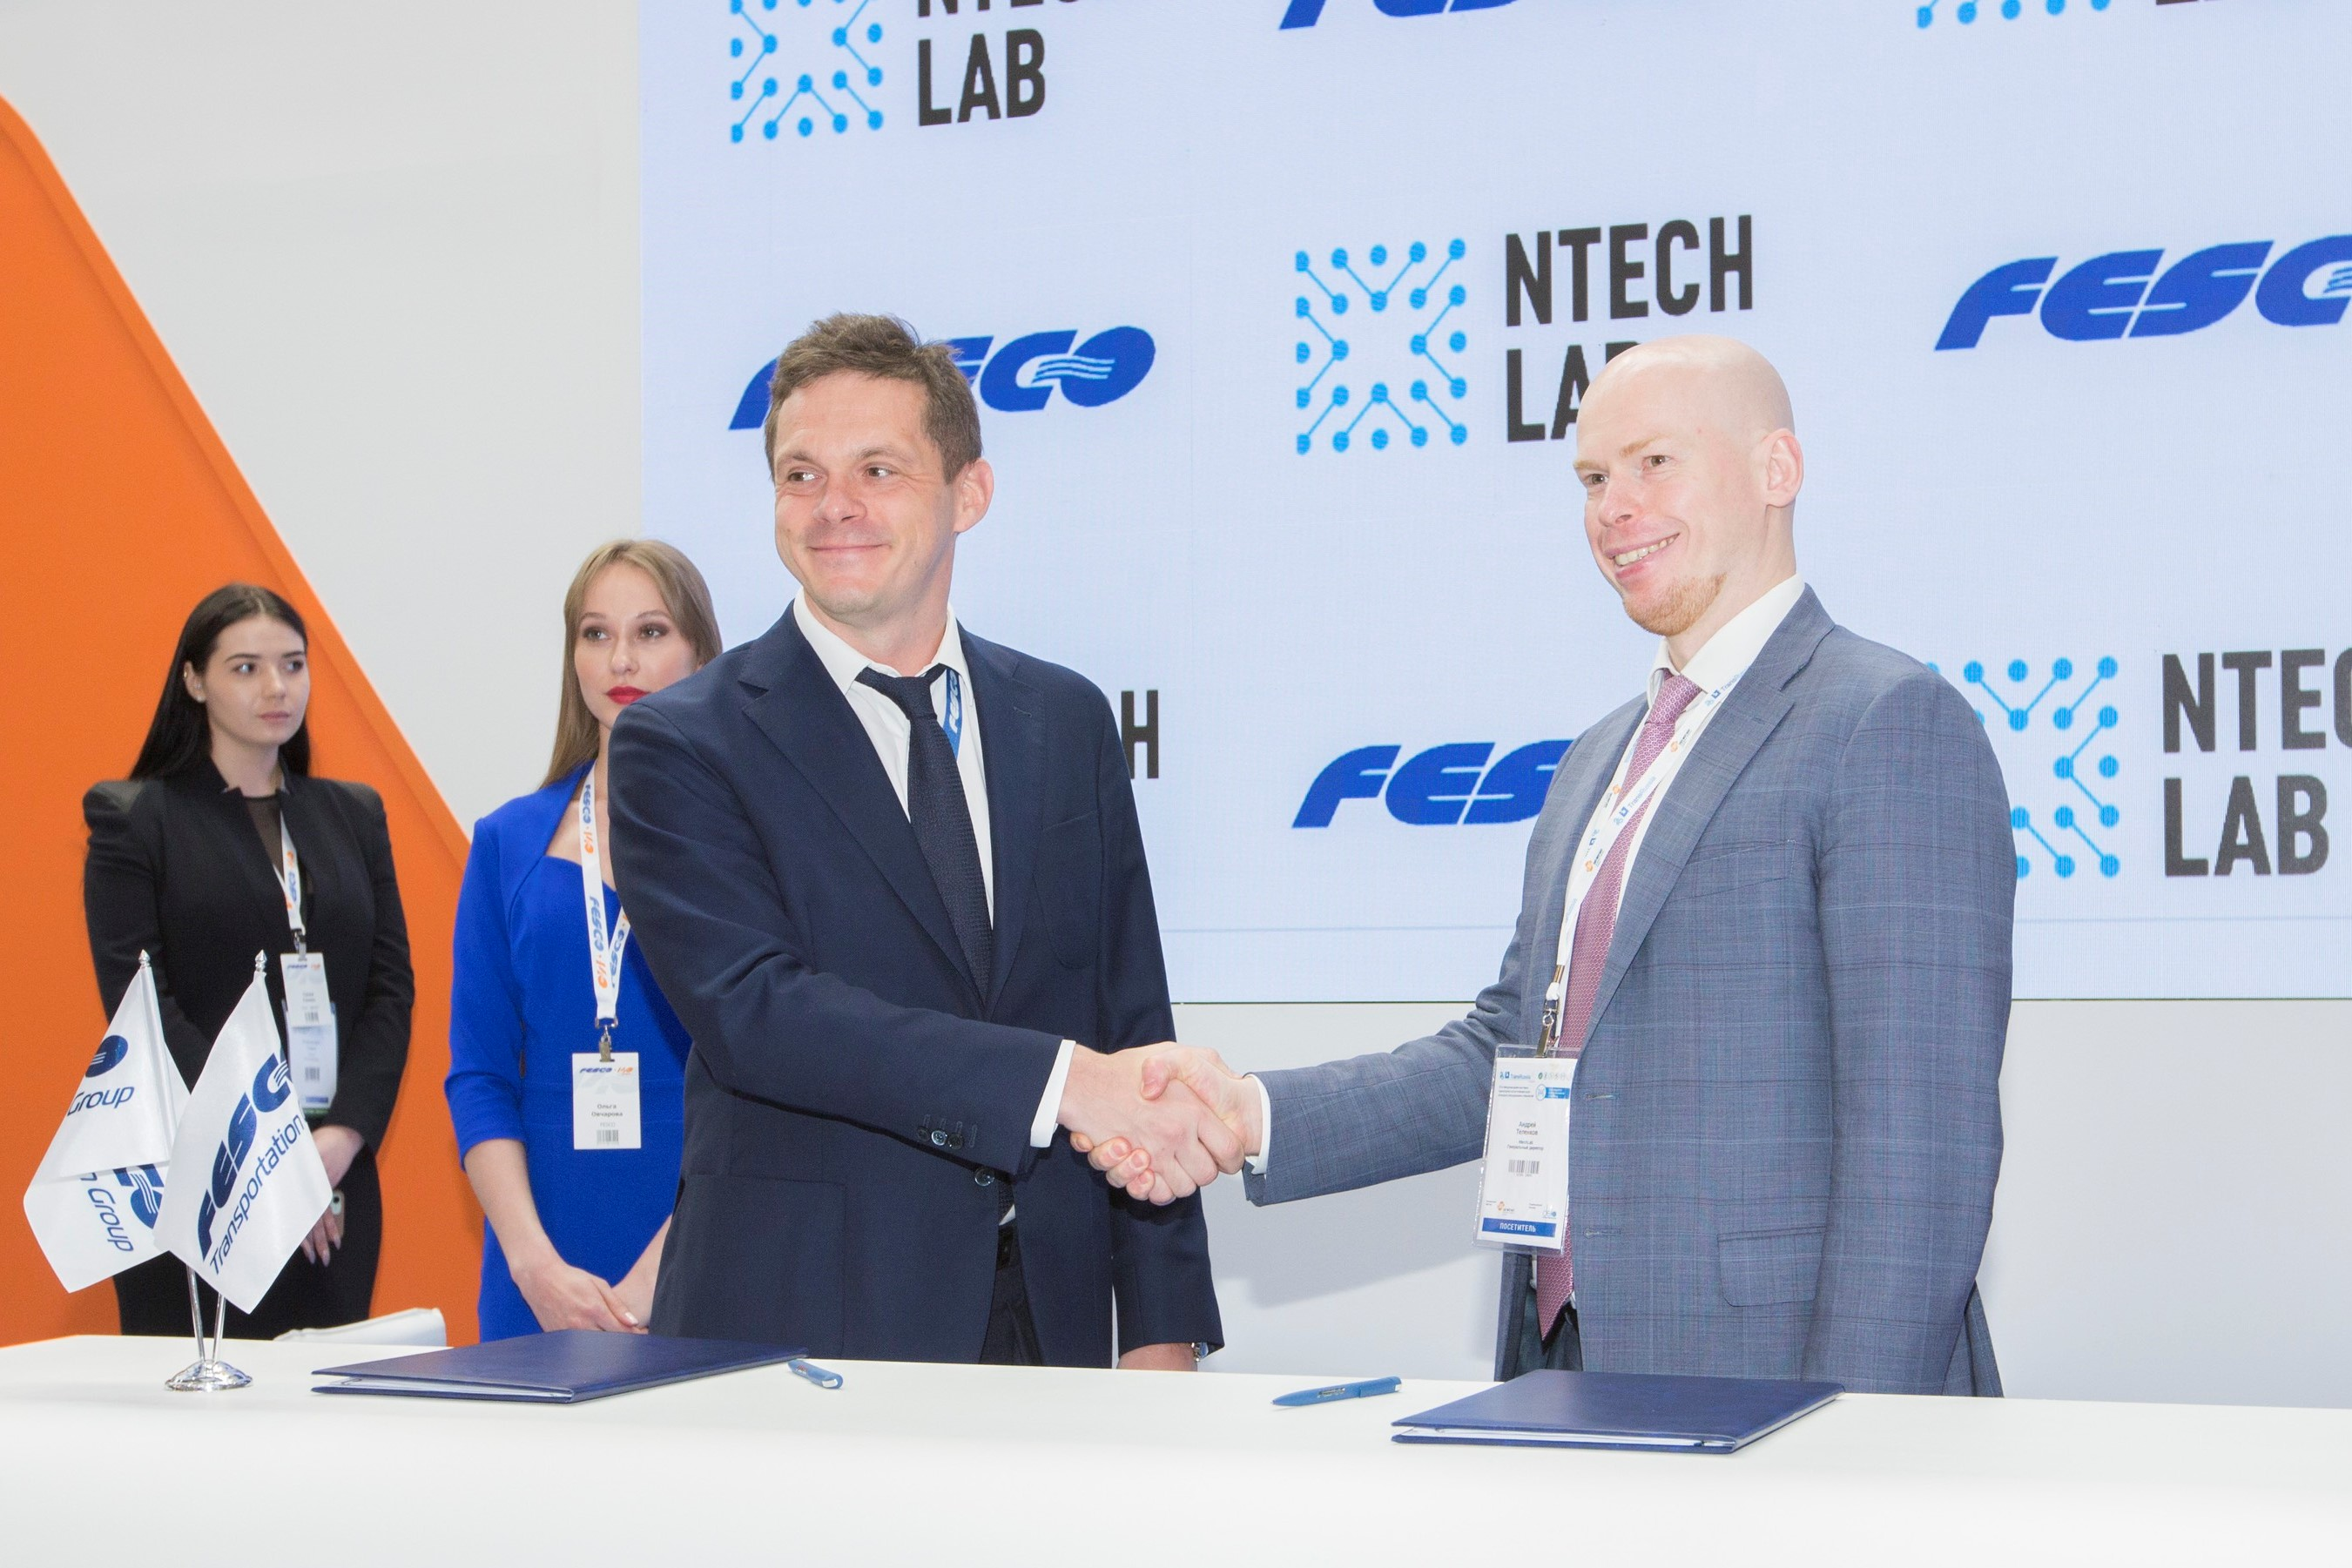 FESCO and NtechLab to collaborate in the digital field